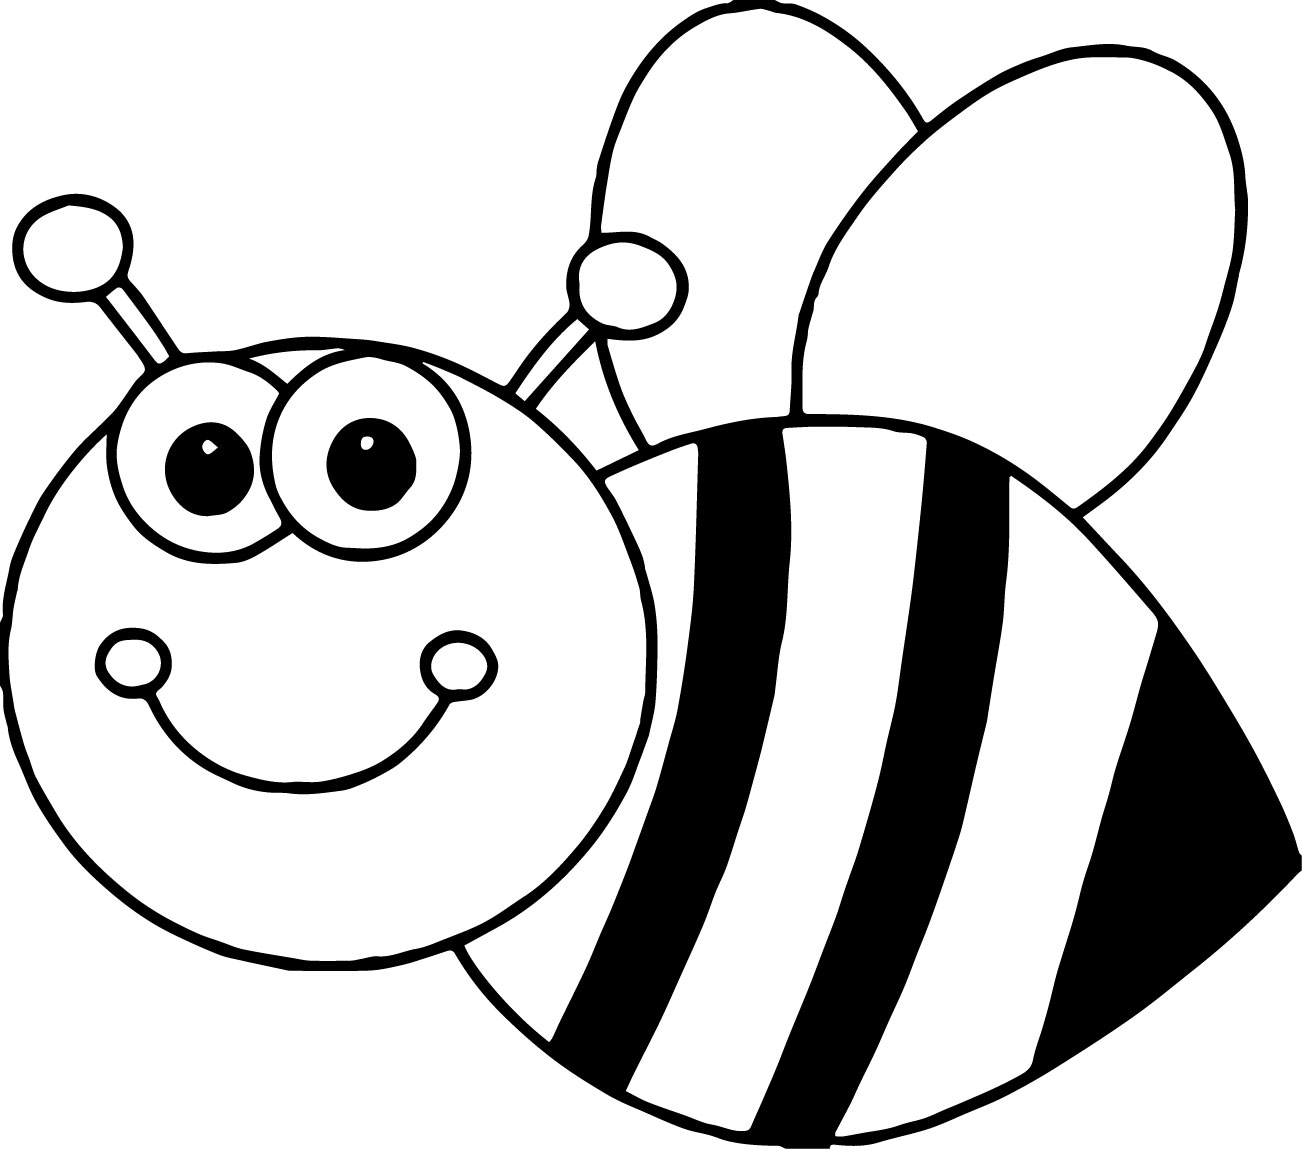 bumble bee coloring page cute bumble bee coloring pages download and print for free bee page coloring bumble